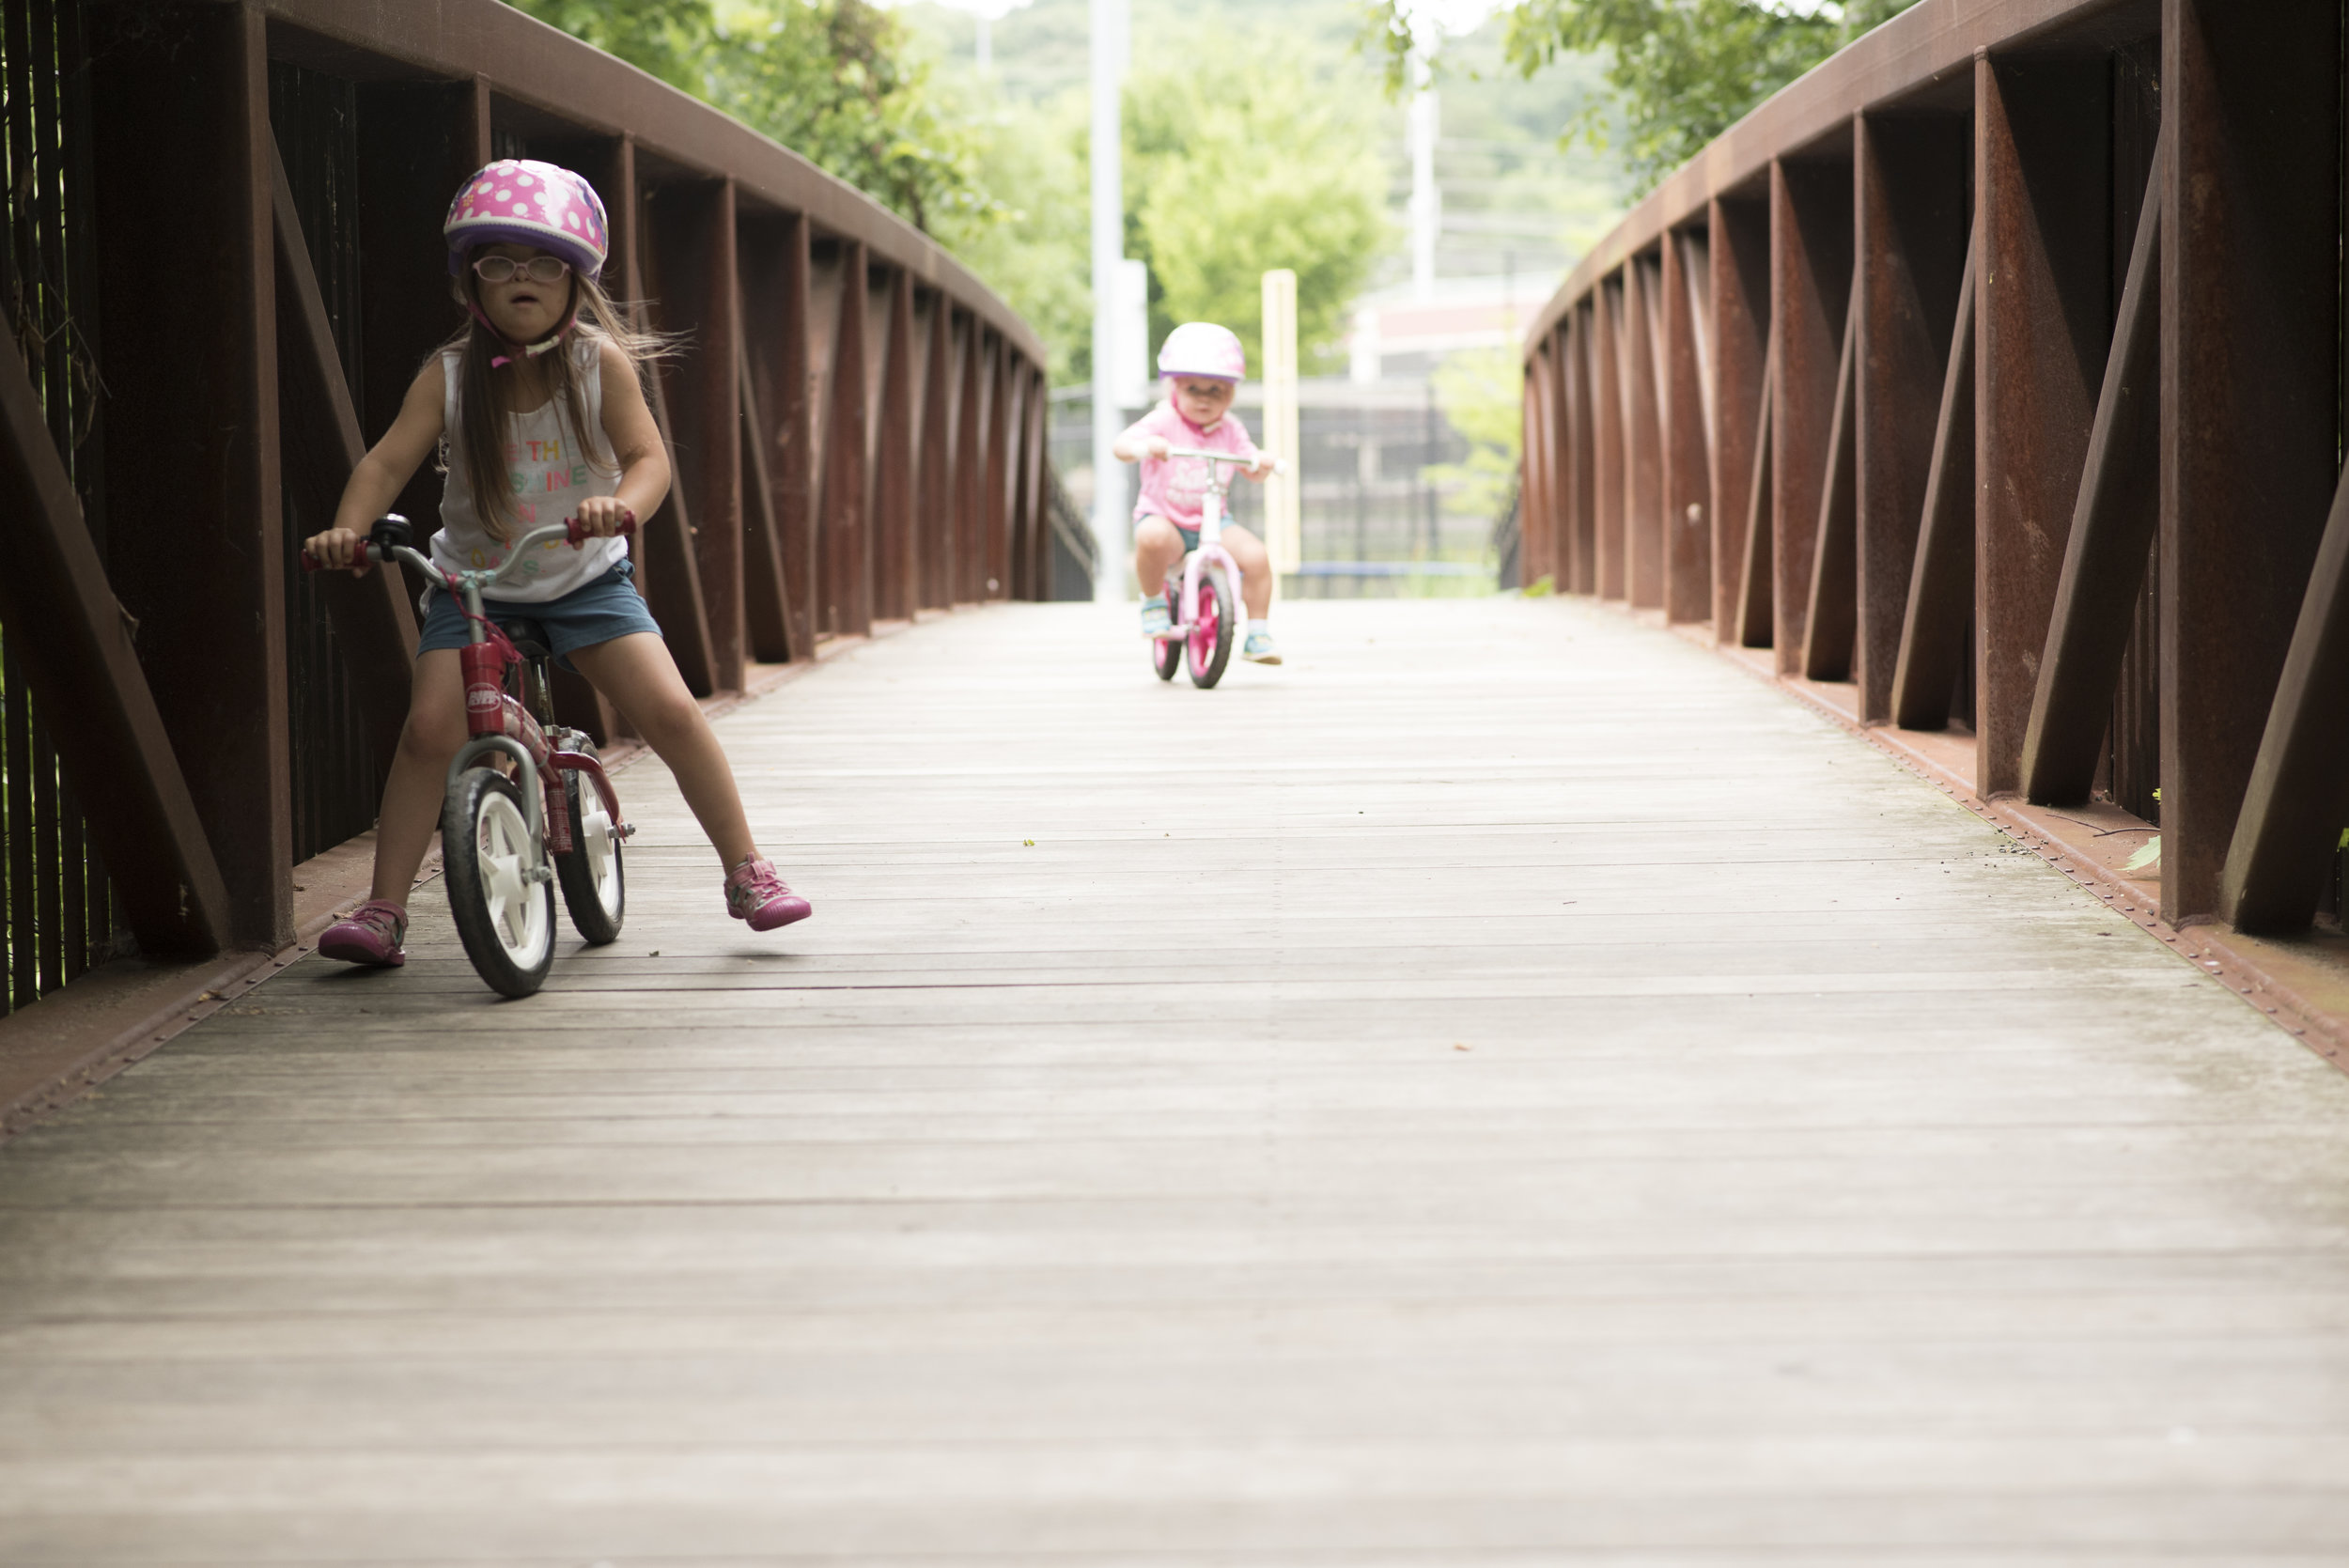 One of our favorite morning activities: Park at  Barcroft . Bike or scooter to the big playground by the picnic shelter. You might even see a turtle over by Four Mile Run!